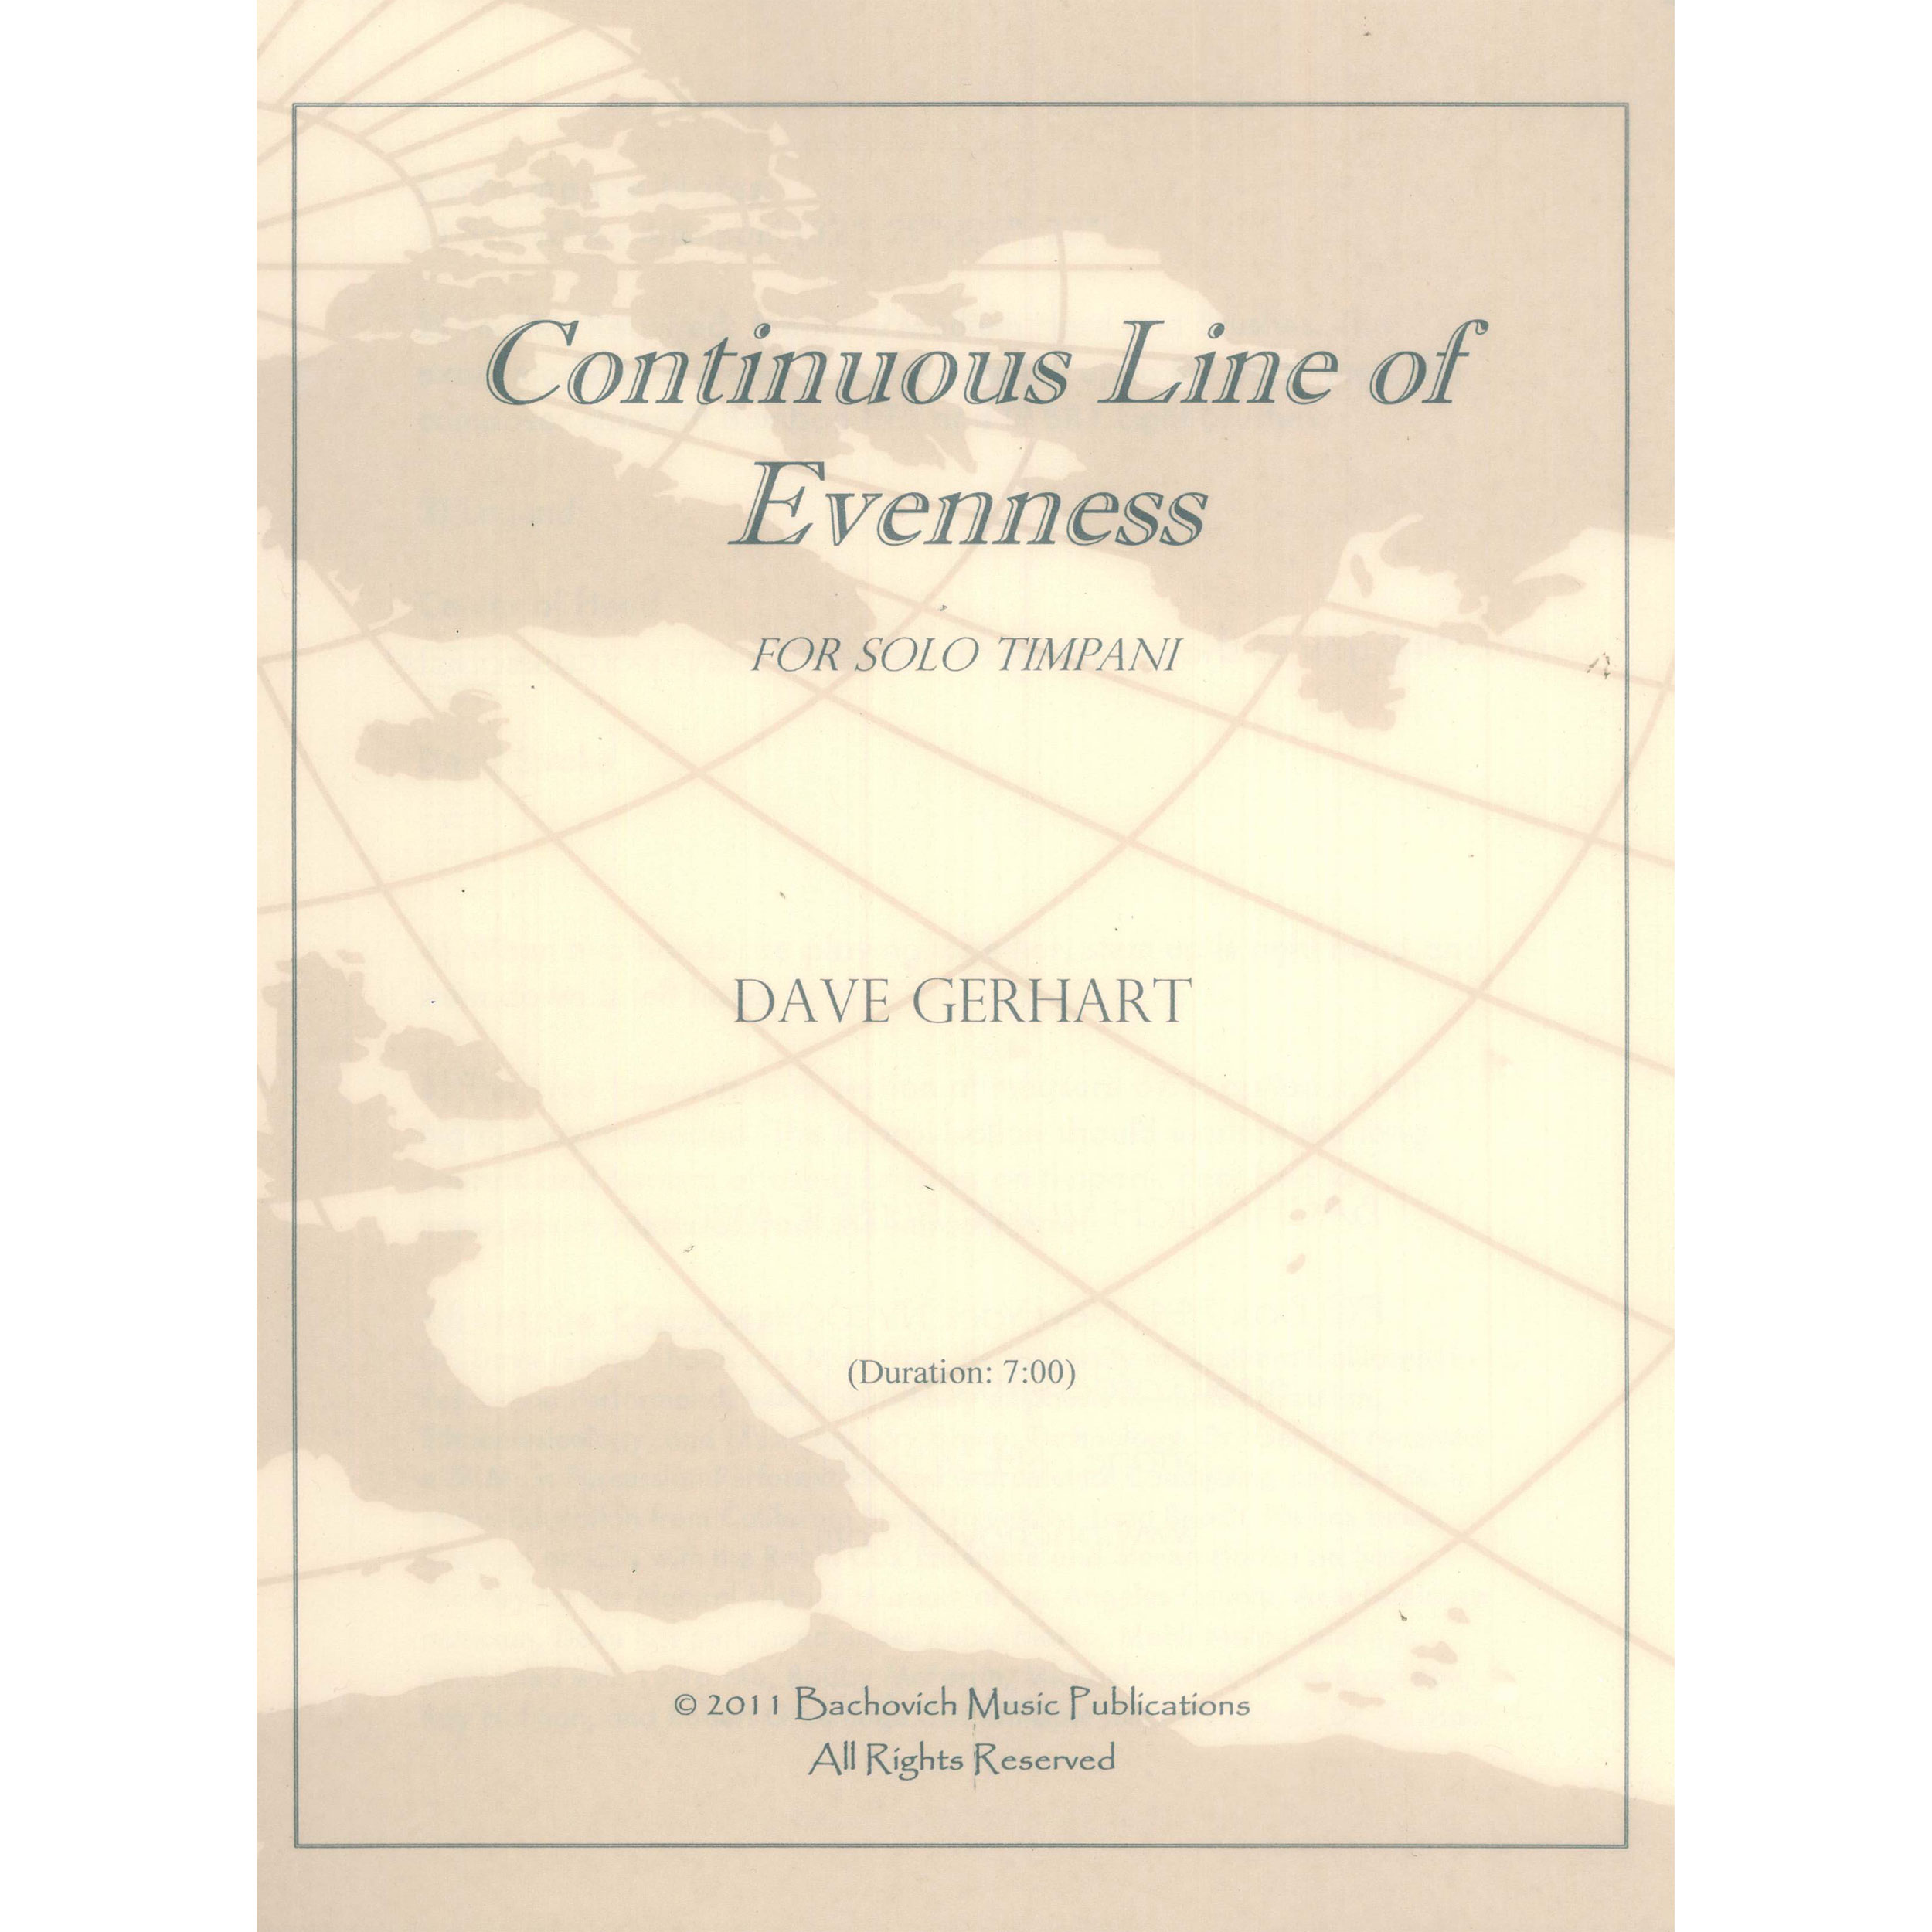 Continuous Line of Evenness by Dave Gerhart